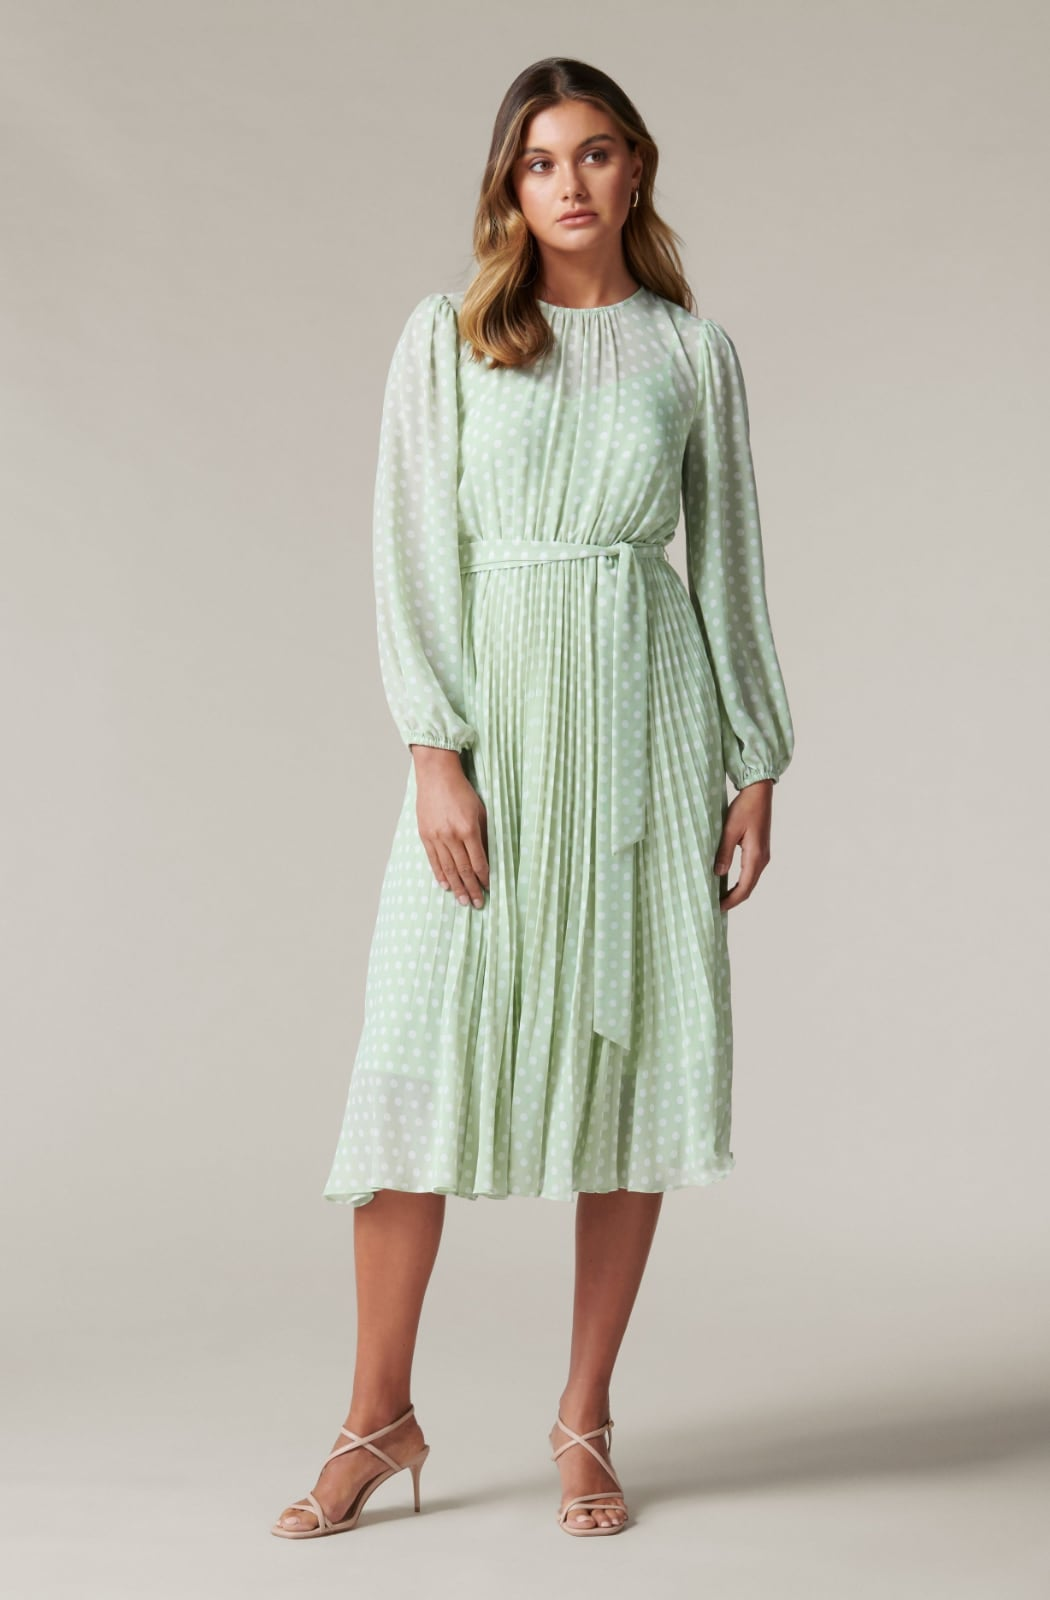 Ever New Clothing| Women's Fashion Dresses